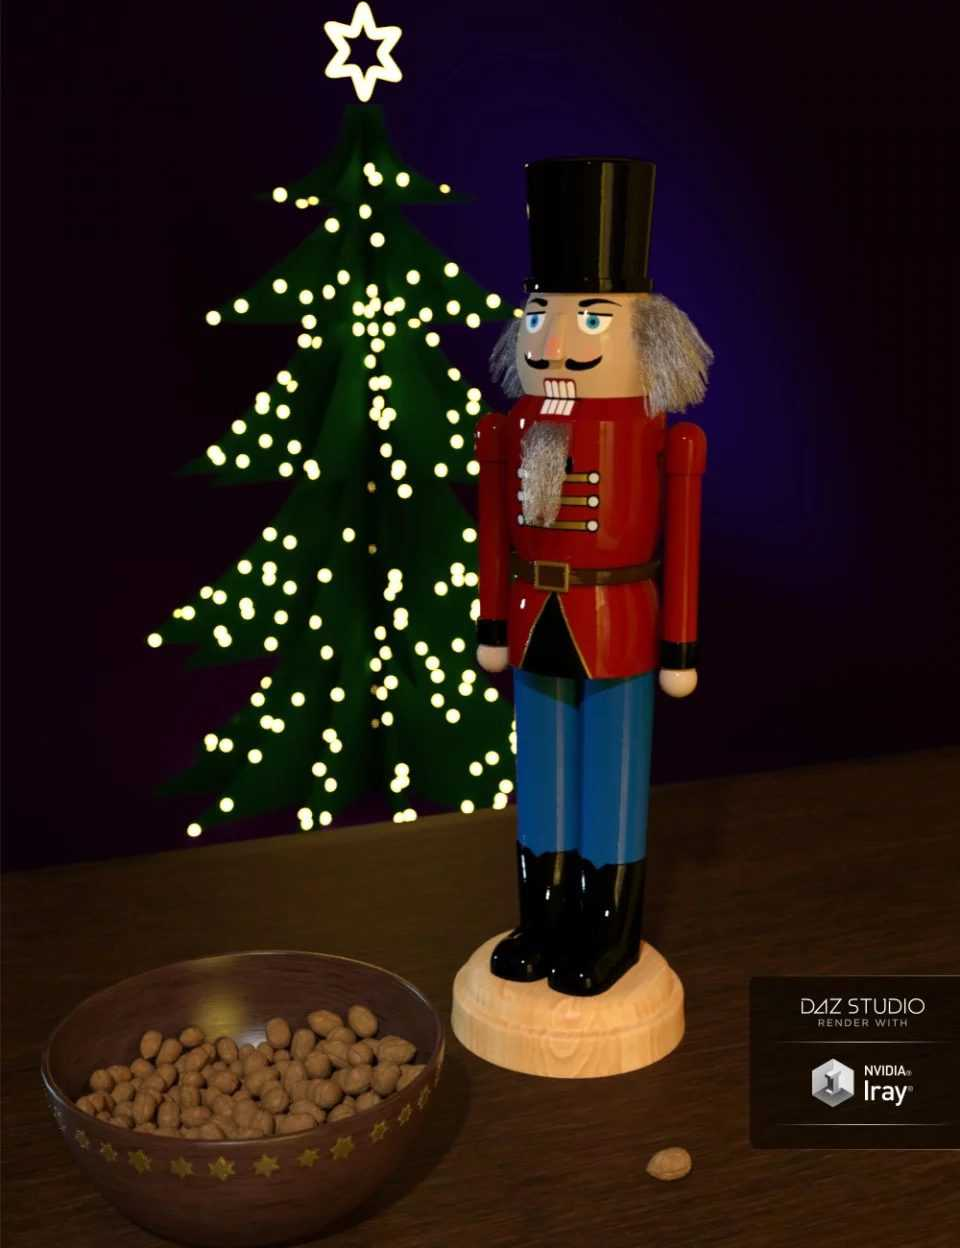 Nutcracker with Strand Based Hair and Bowl with Walnuts